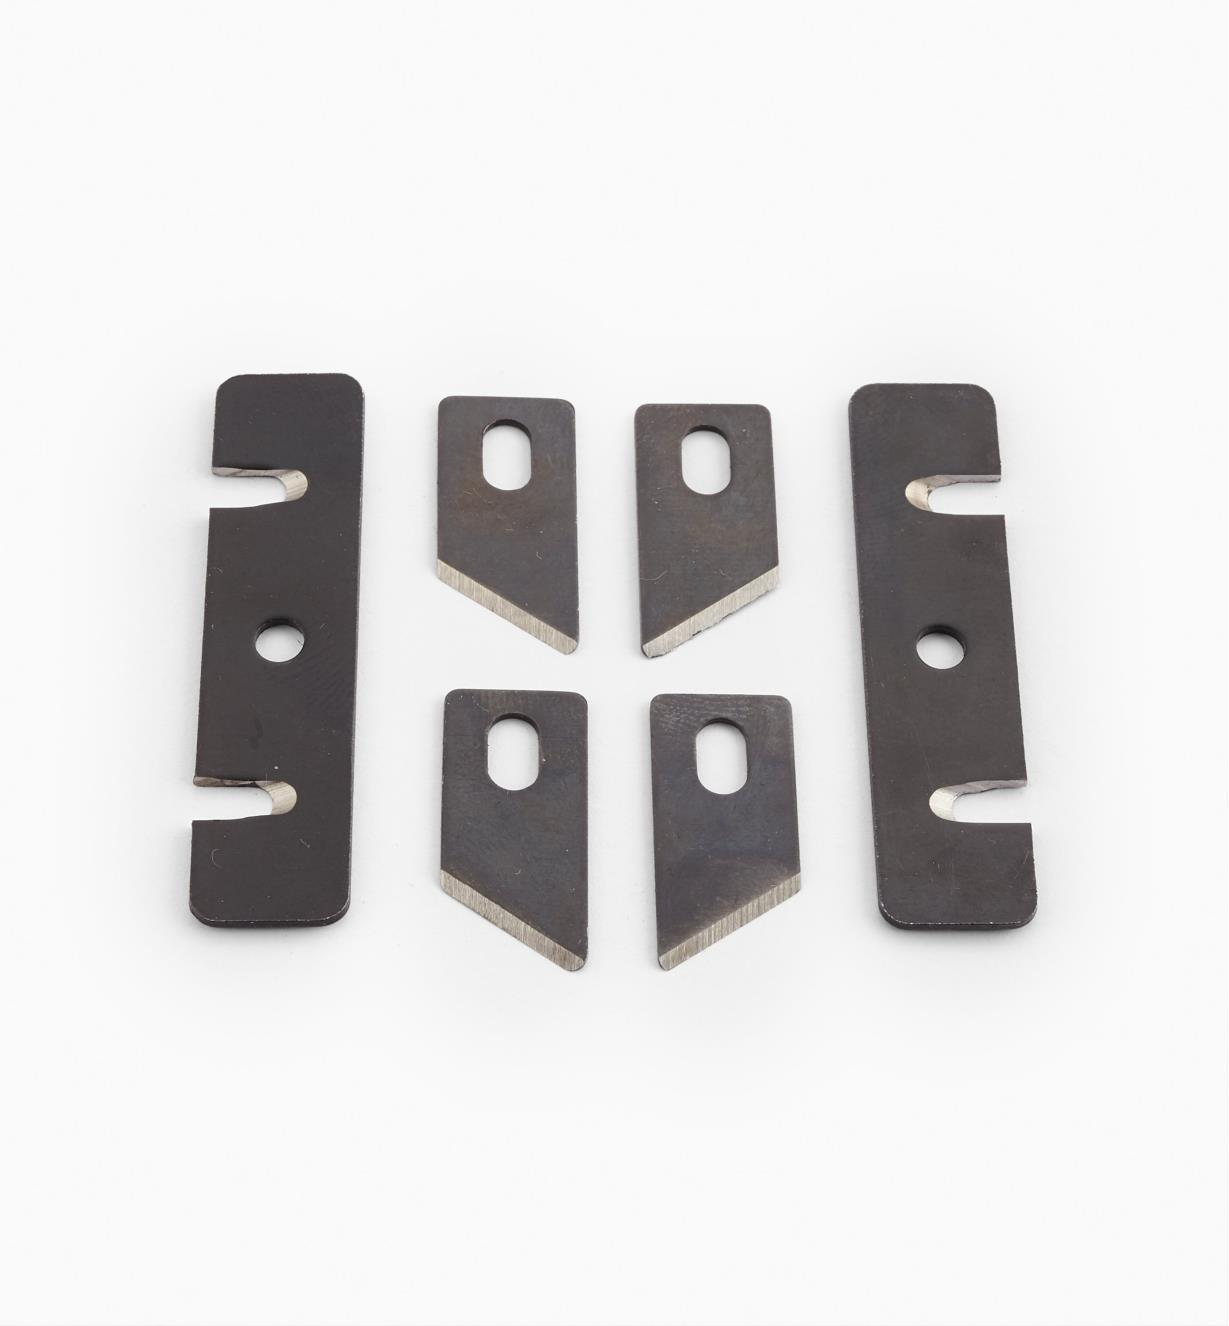 99K4002 - Set of 6 Repl. Blades